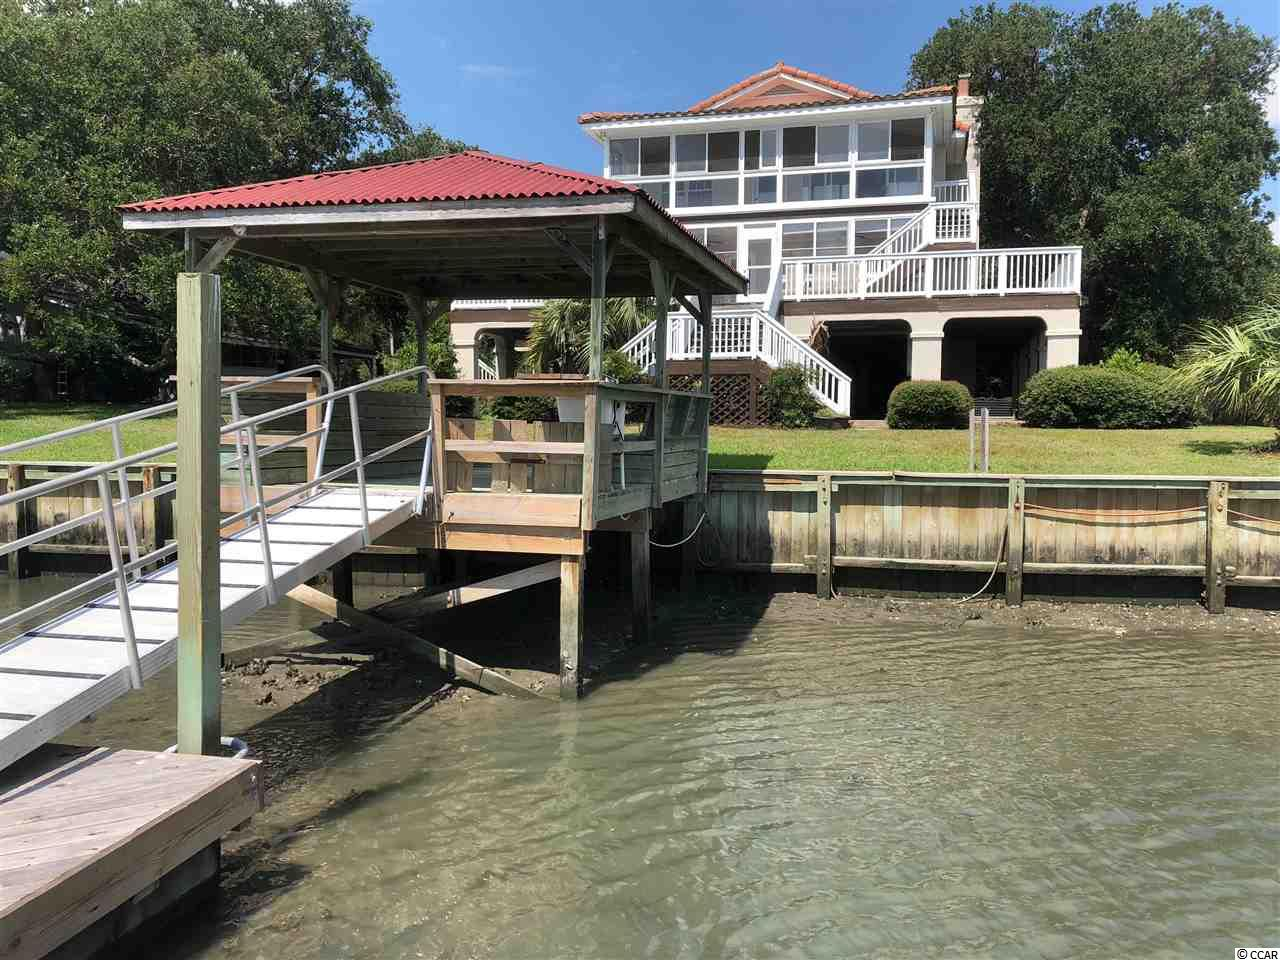 Great creek front home on very private double lot with spectacular inlet views! Property is within walking distance to many local attractions including the Murrells Inlet Marsh Walk and the bike path to Brookgreen Gardens and Huntington Beach State Park. Floor plan features over 3,000 heated square feet of living space complete with 5 bedrooms, 4 full baths, 2 half baths, 2 sun rooms, a wood burning fireplace on each level, and a large outdoor entertaining area with separate kitchen and bath. Nearly every room has porch access and a view of the inlet! Third level is separate from 2nd level and can be used as a mother-in-law-suite, guest quarters, or can be combined with main living area. An additional bedroom/office and full bath with private entrance is located on the ground level. 4 bay carport, multiple storage areas, and large dock ensure enough space for all of your toys! Deep water access during appropriate tides. Unobstructed views of Murrells Inlet, Huntington Beach State Park, jetties, and the Atlantic Ocean. Home needs a lot of TLC, but the possibilities are endless with this unique property! . All information is deemed reliable but should be verified by all potential buyers and agents.